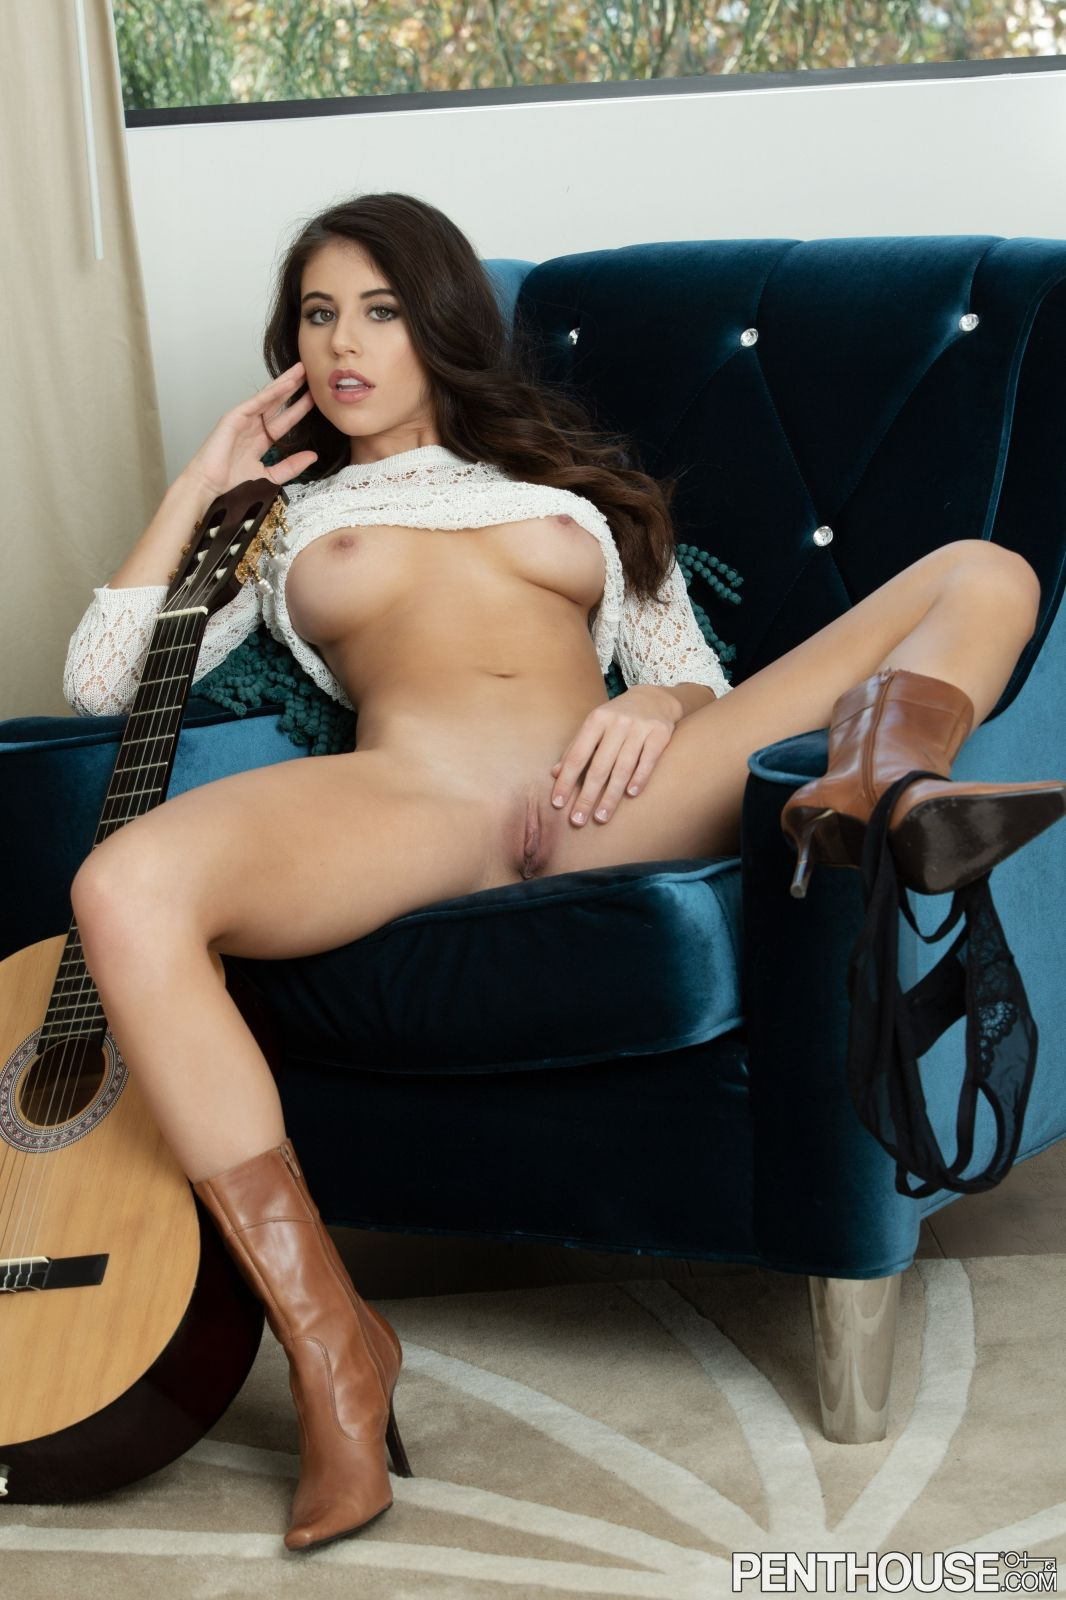 Violet Summers Nude Leaked Photos 0053